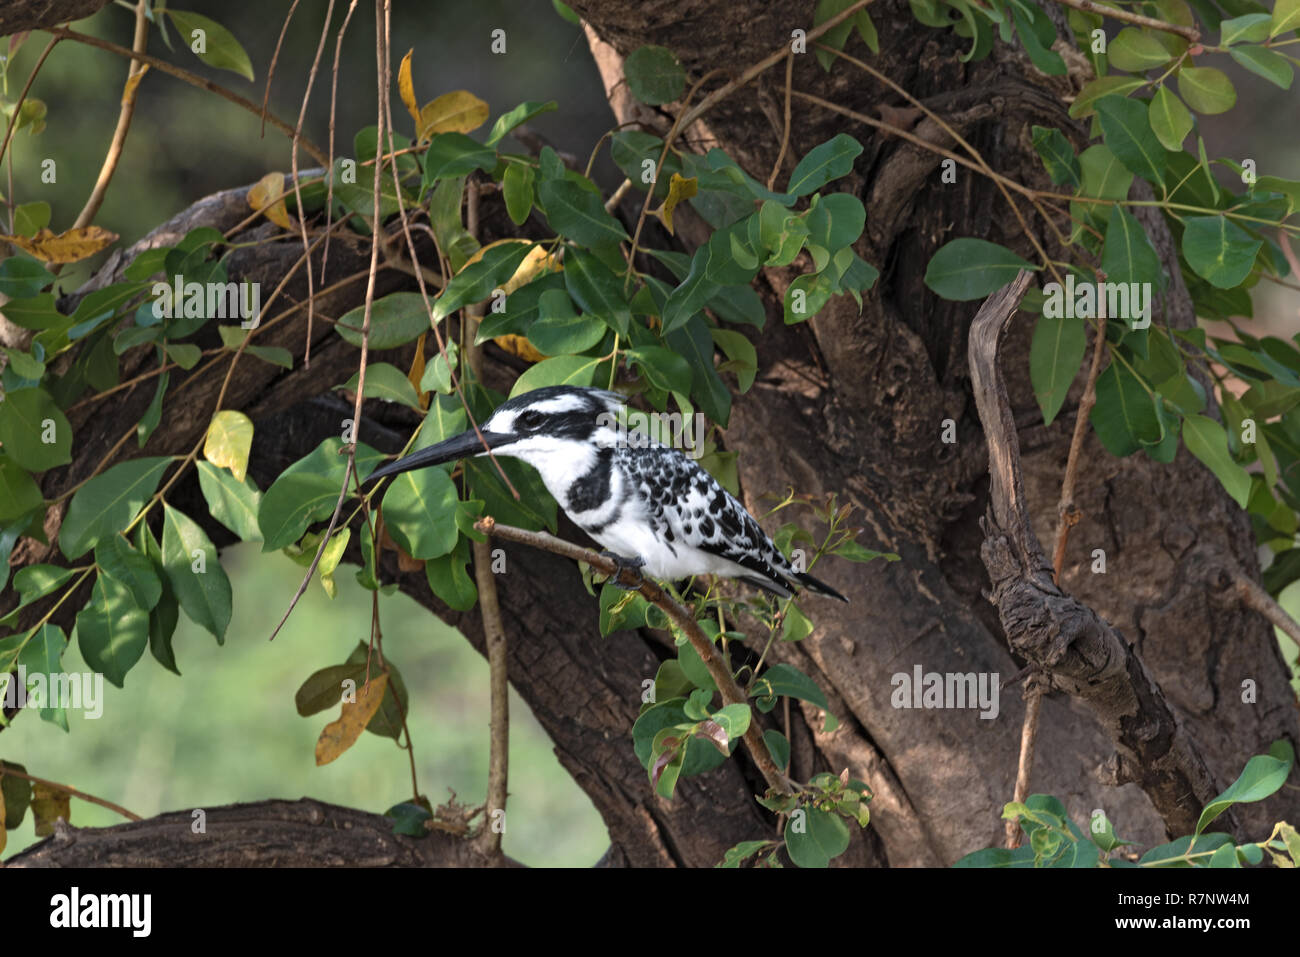 Pied kingfisher perched sits on a tree branch, Botswana - Stock Image